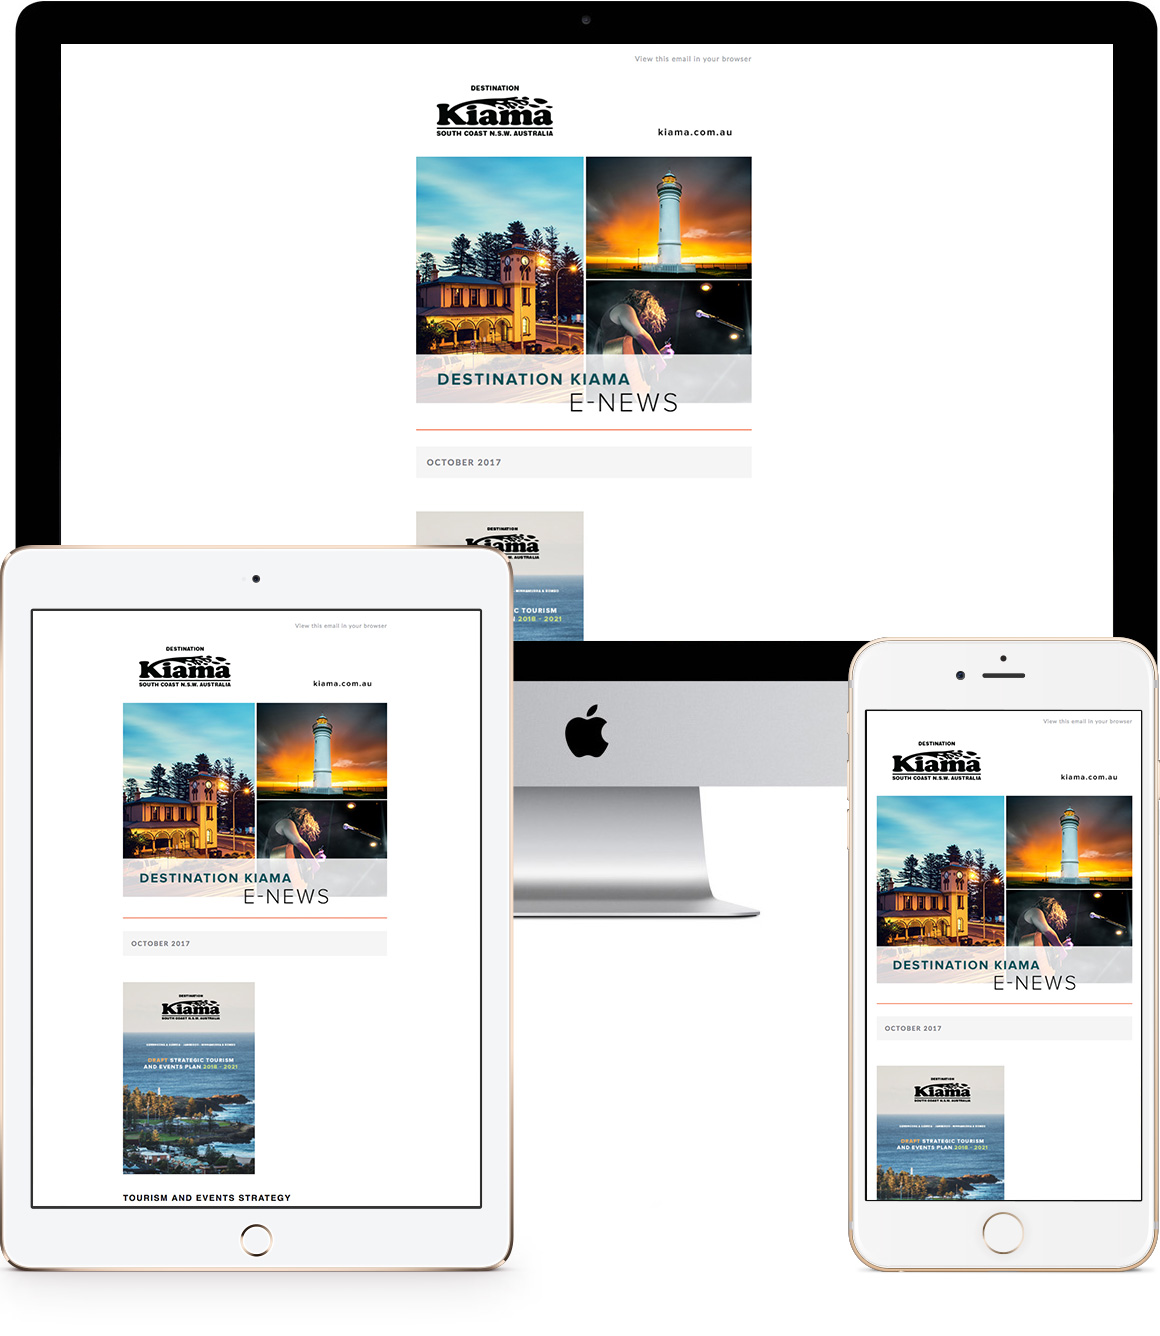 Destination Kiama eNewsletter design and development - Eureka Creative